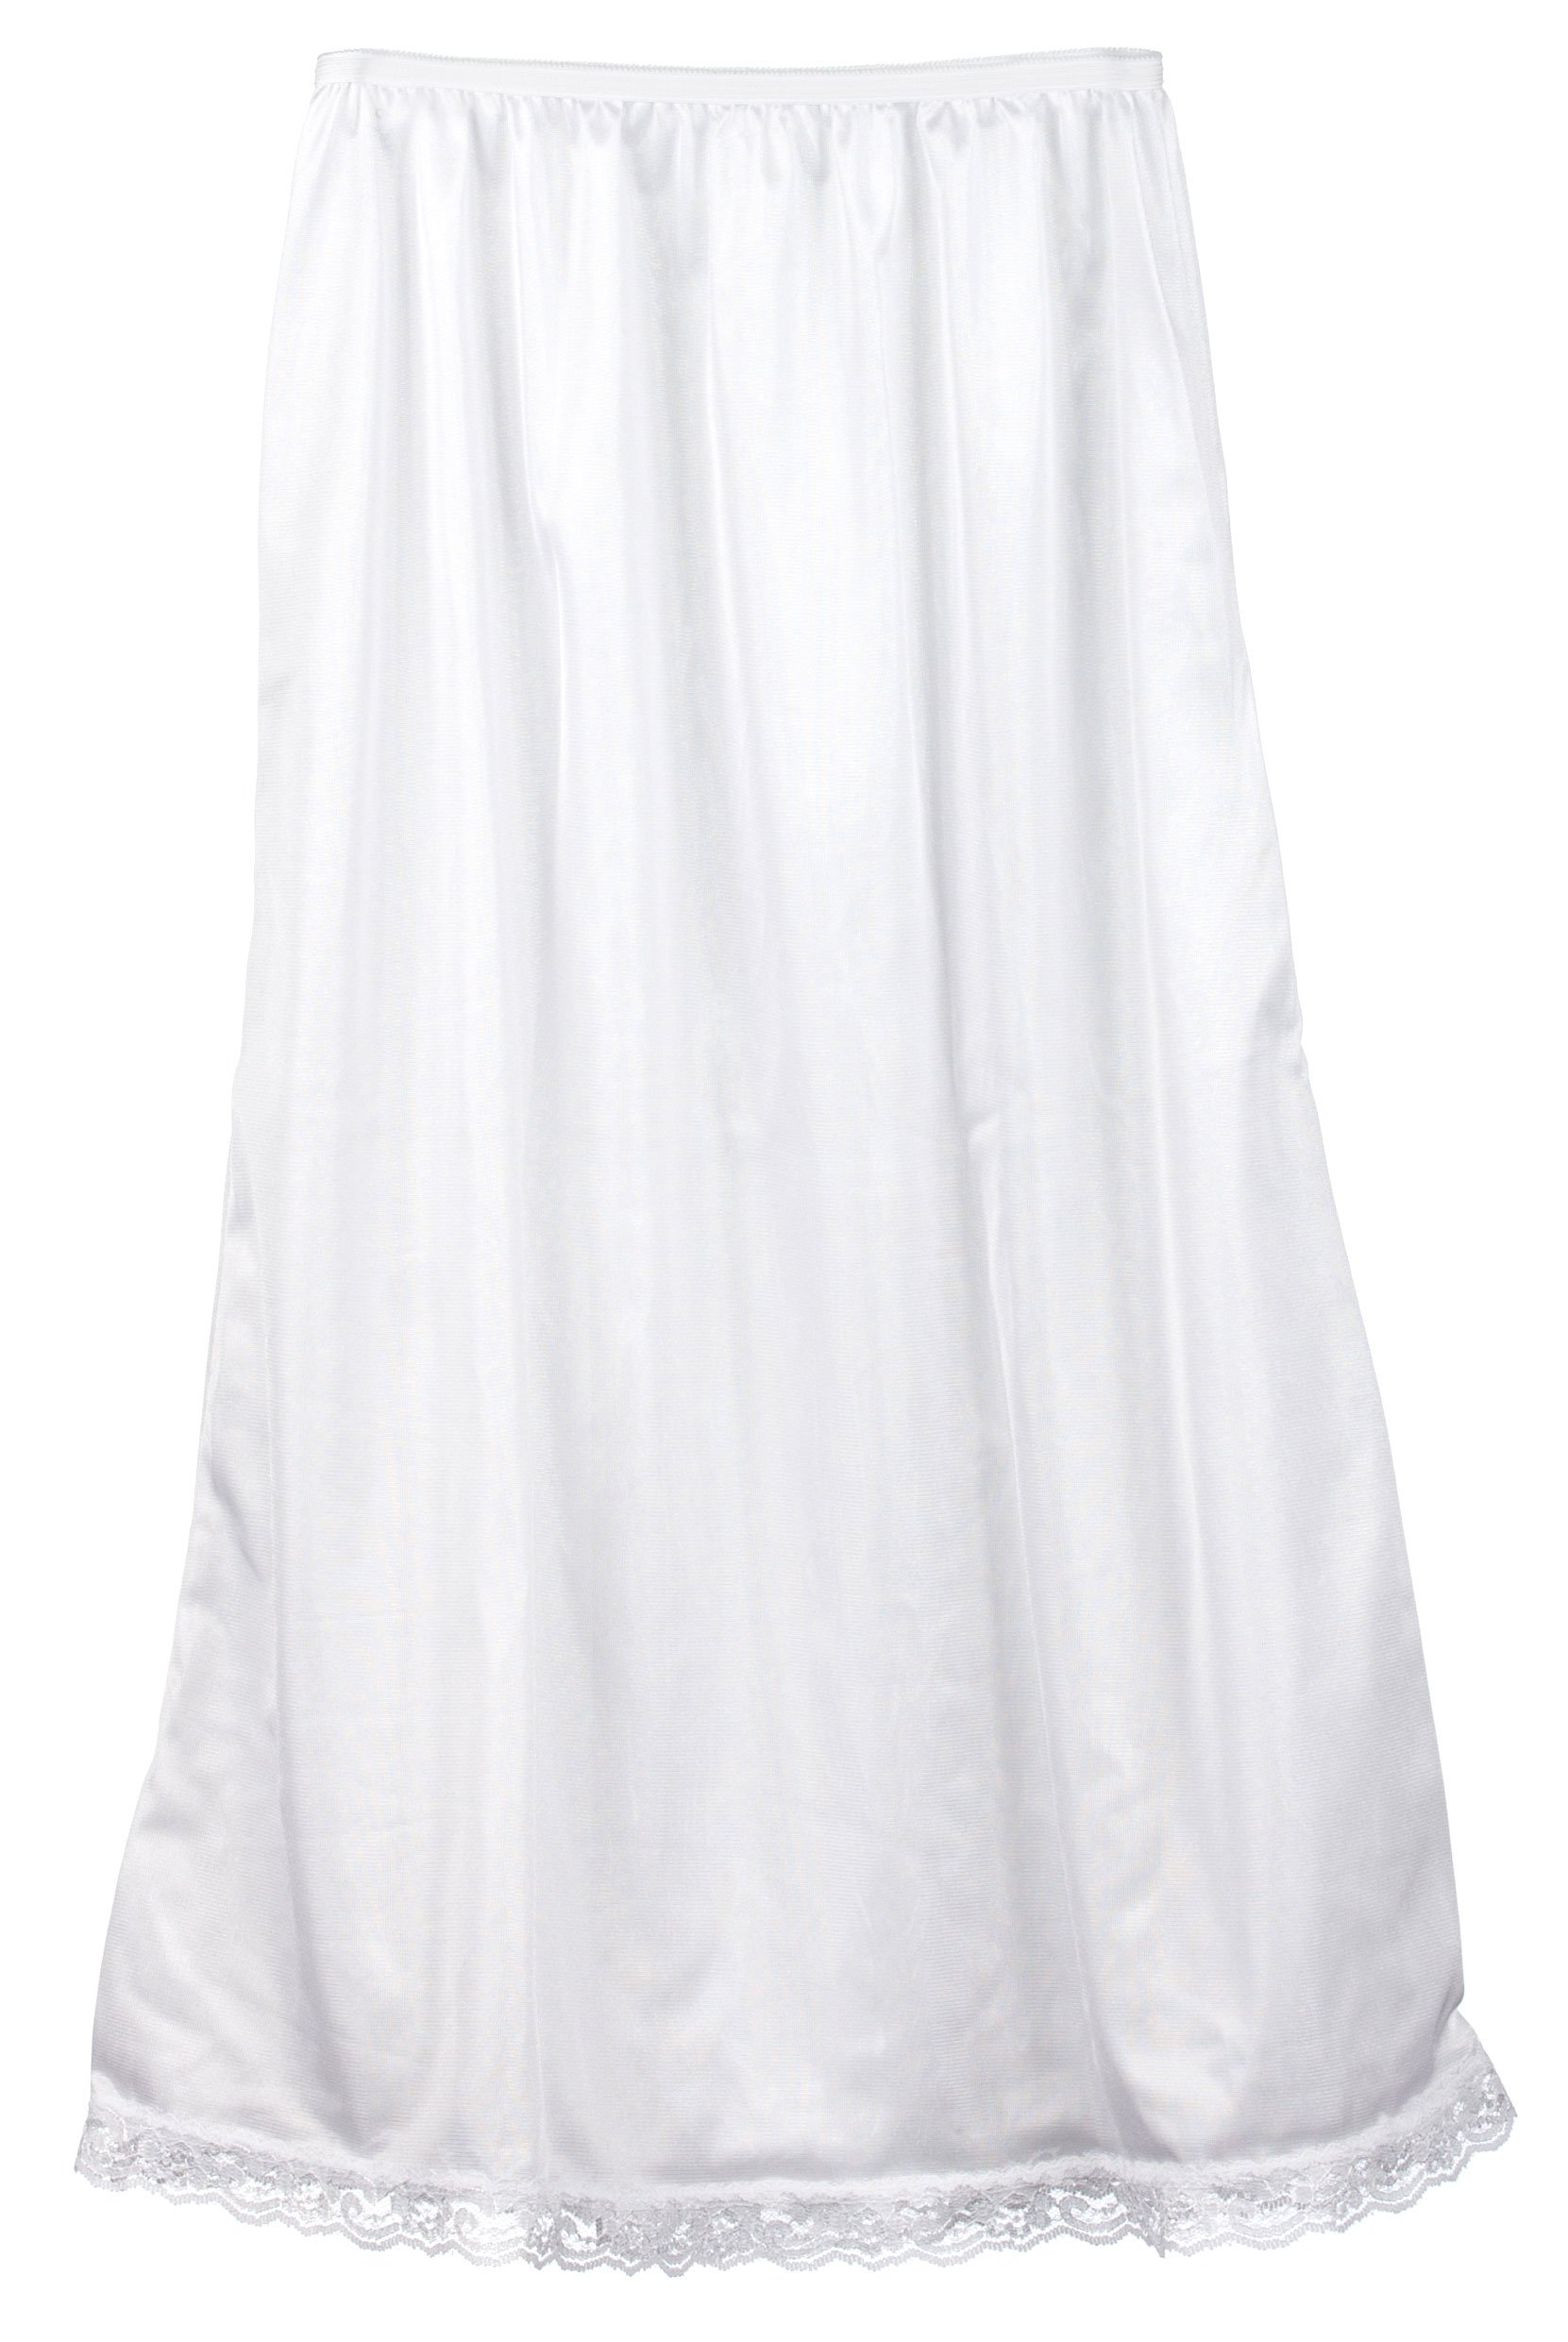 I.C. Collections Big Girls White Nylon Half Slip - Tea Length, 12